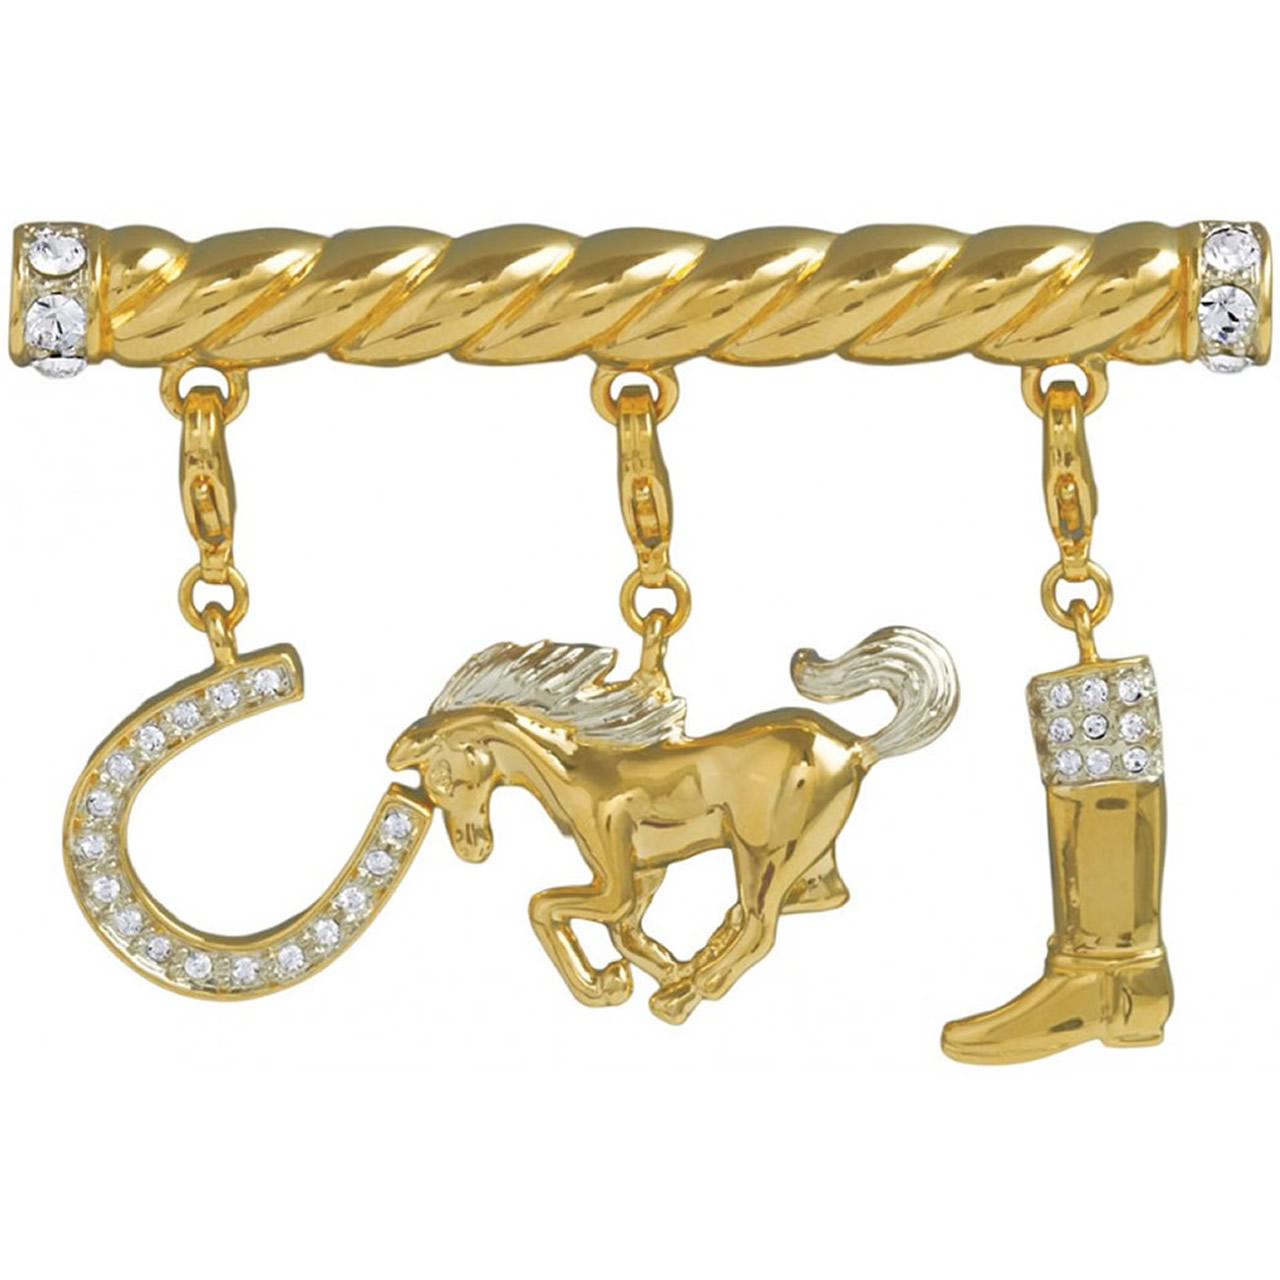 Gold Plated Equestrian Charm Brooch With Silver Crystals